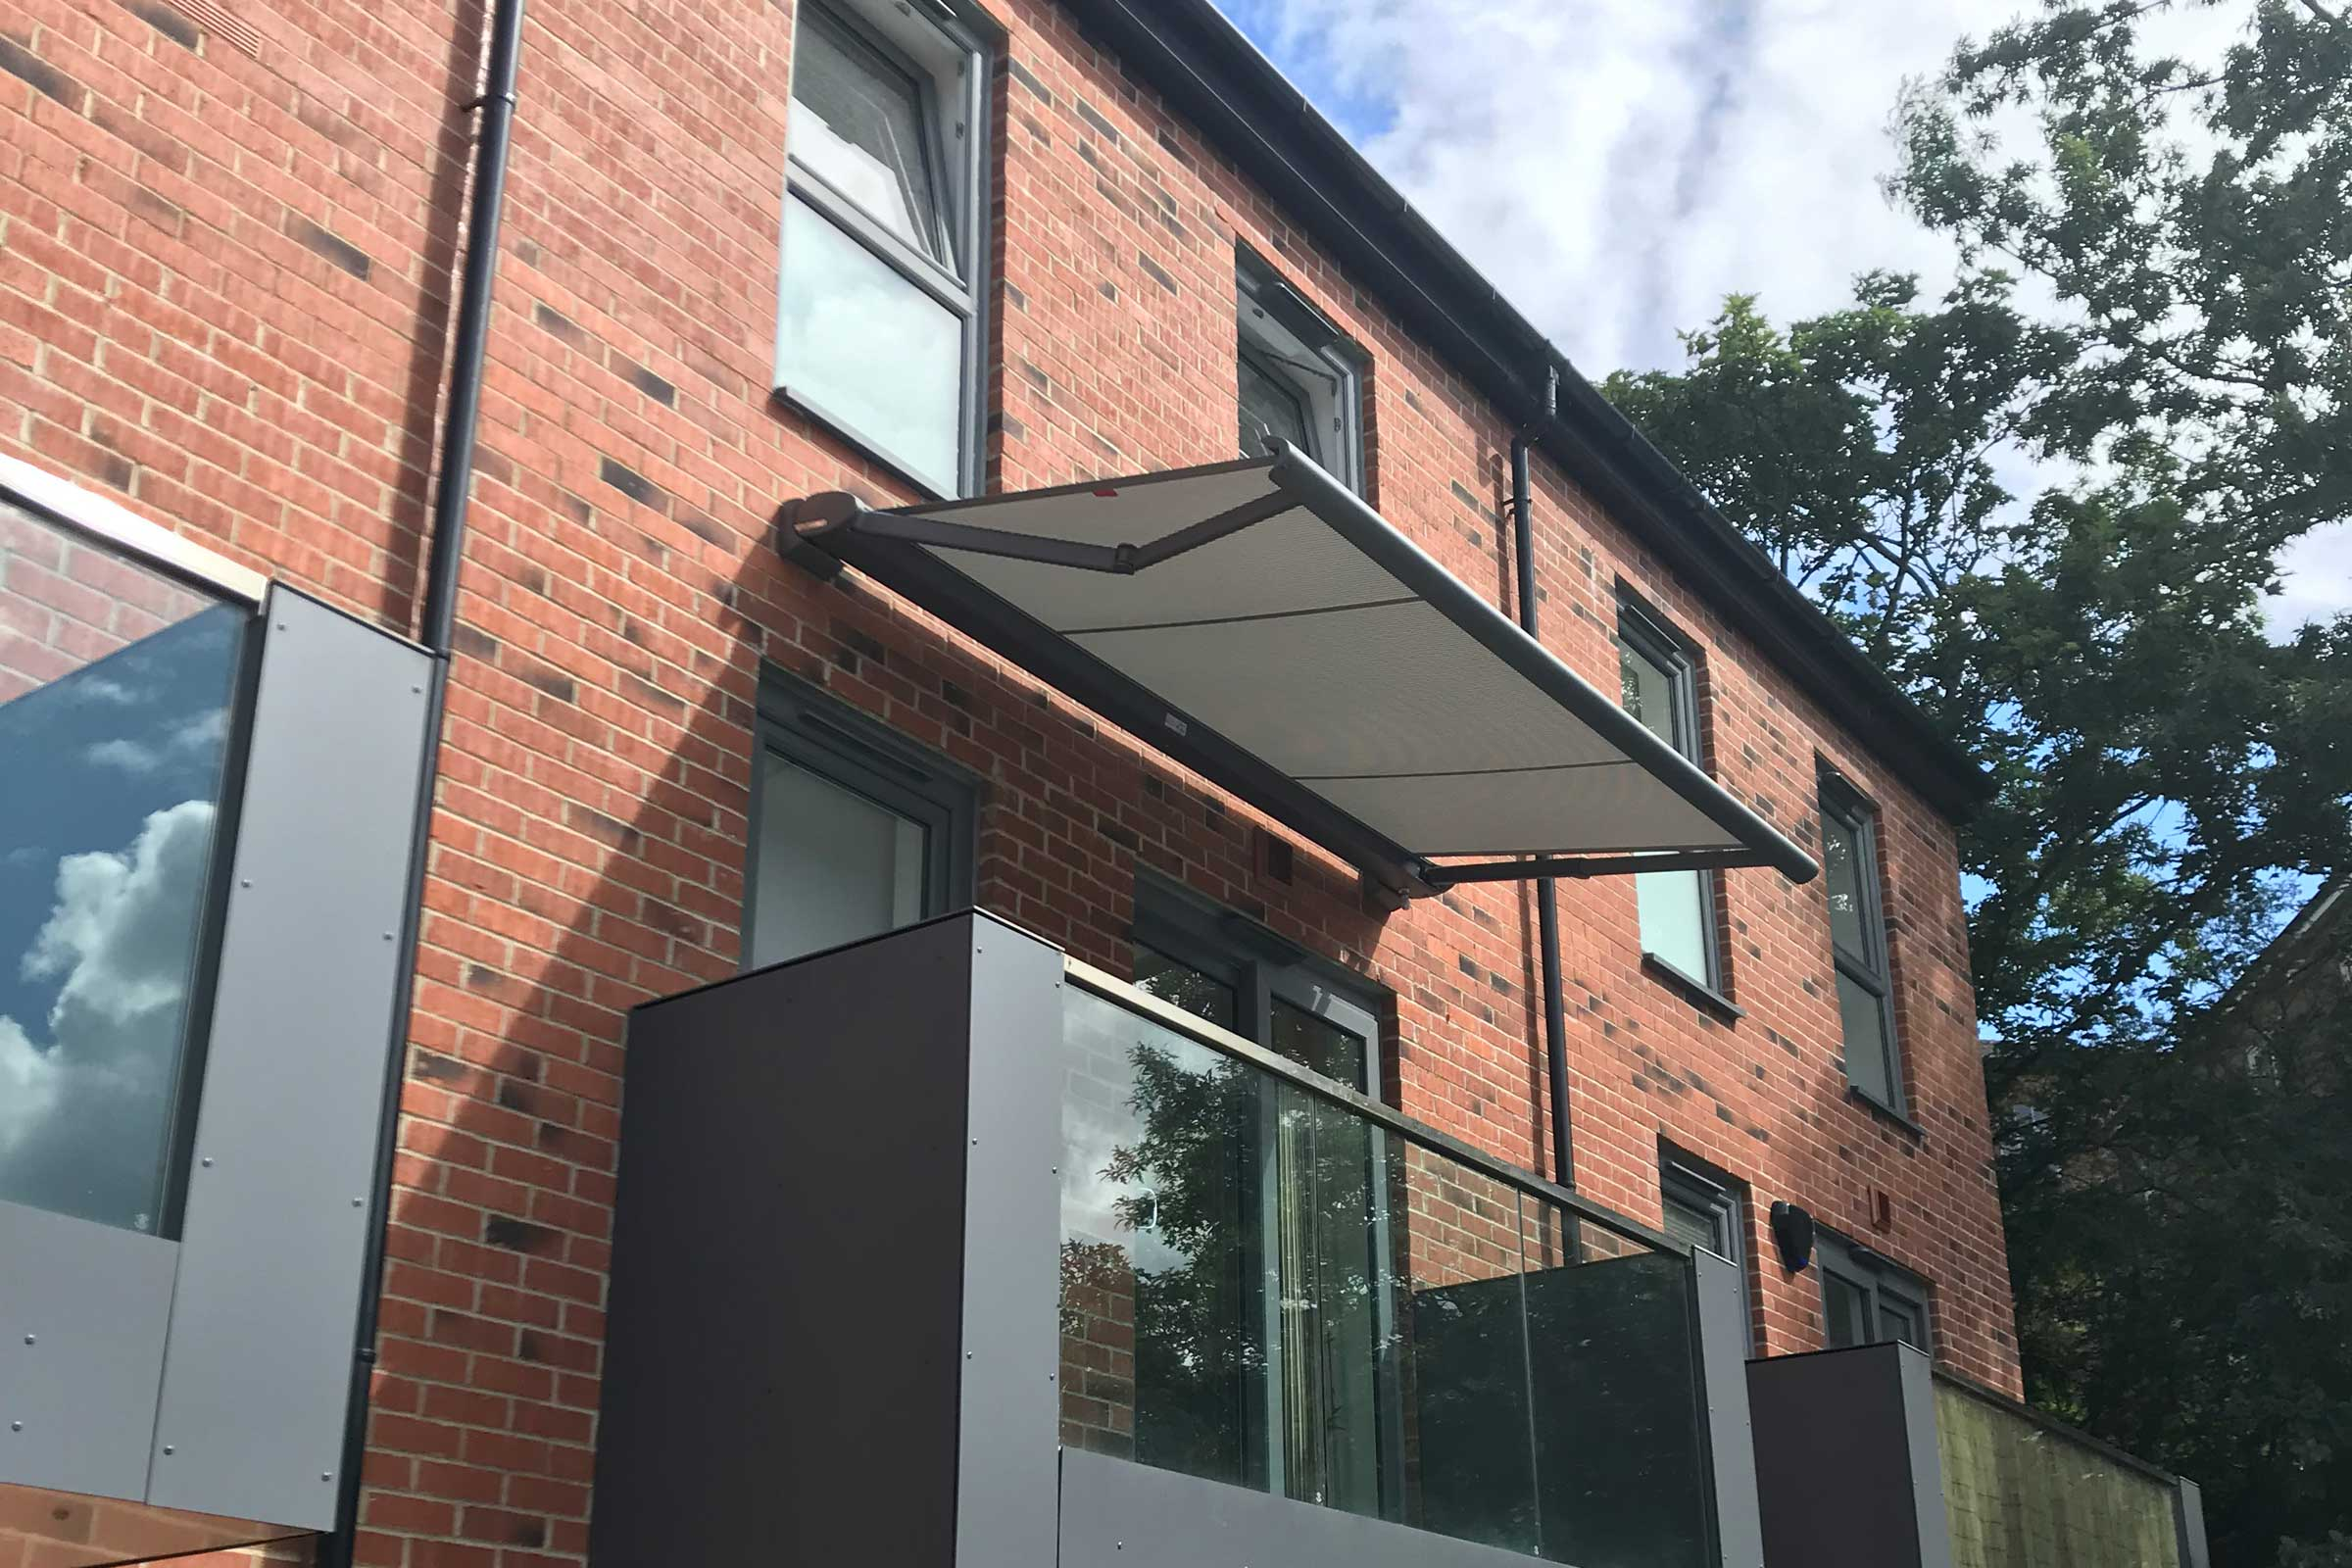 A grey balcony awning